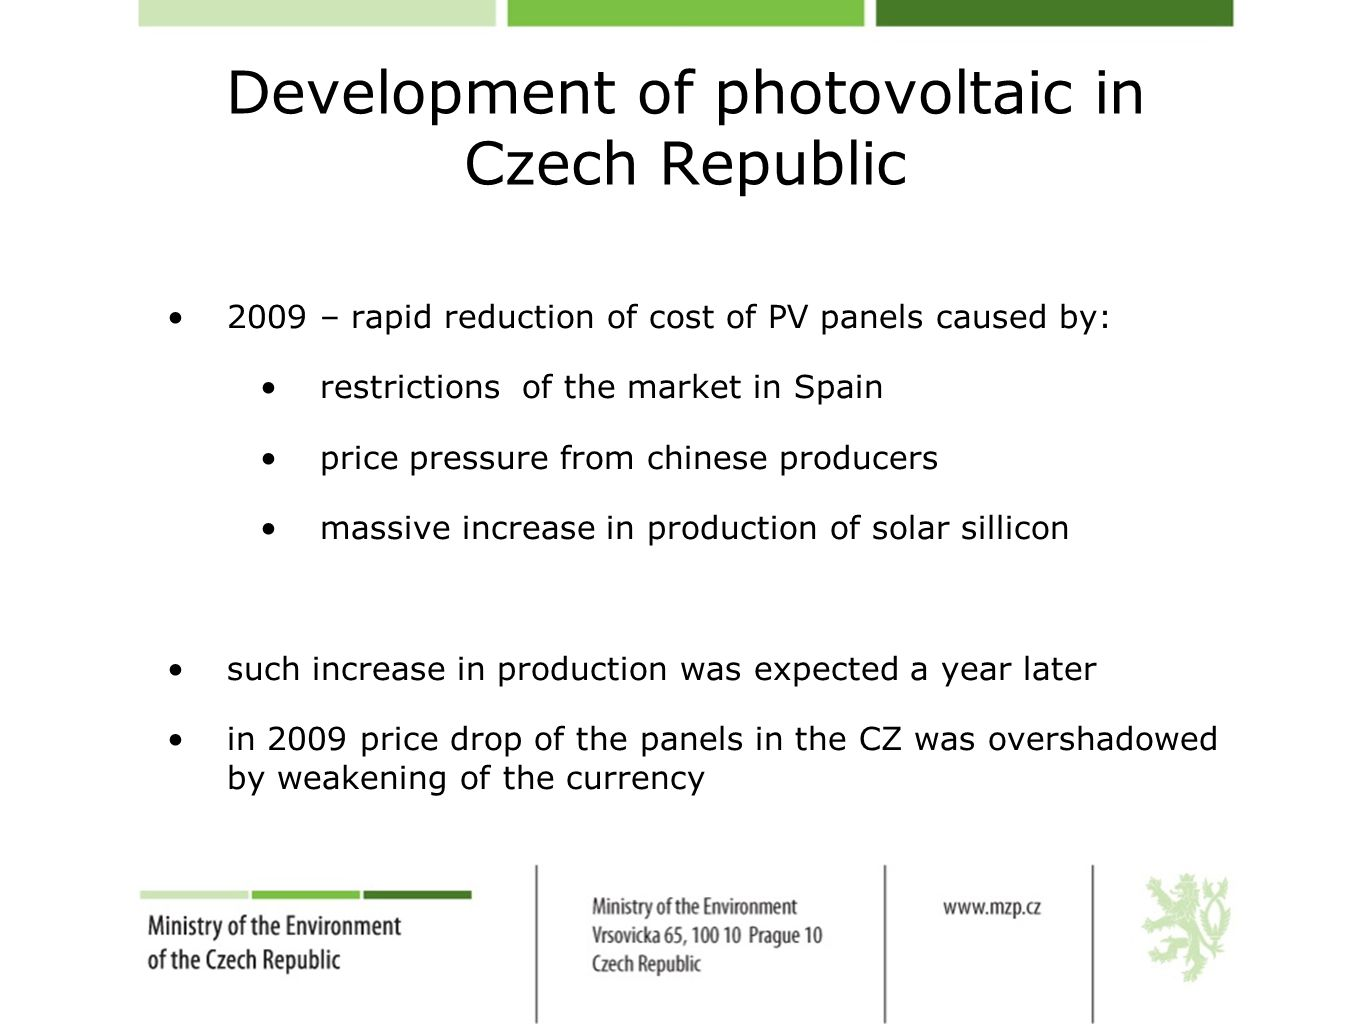 Development of photovoltaic in Czech Republic 2009 – rapid reduction of cost of PV panels caused by: restrictions of the market in Spain price pressure from chinese producers massive increase in production of solar sillicon such increase in production was expected a year later in 2009 price drop of the panels in the CZ was overshadowed by weakening of the currency